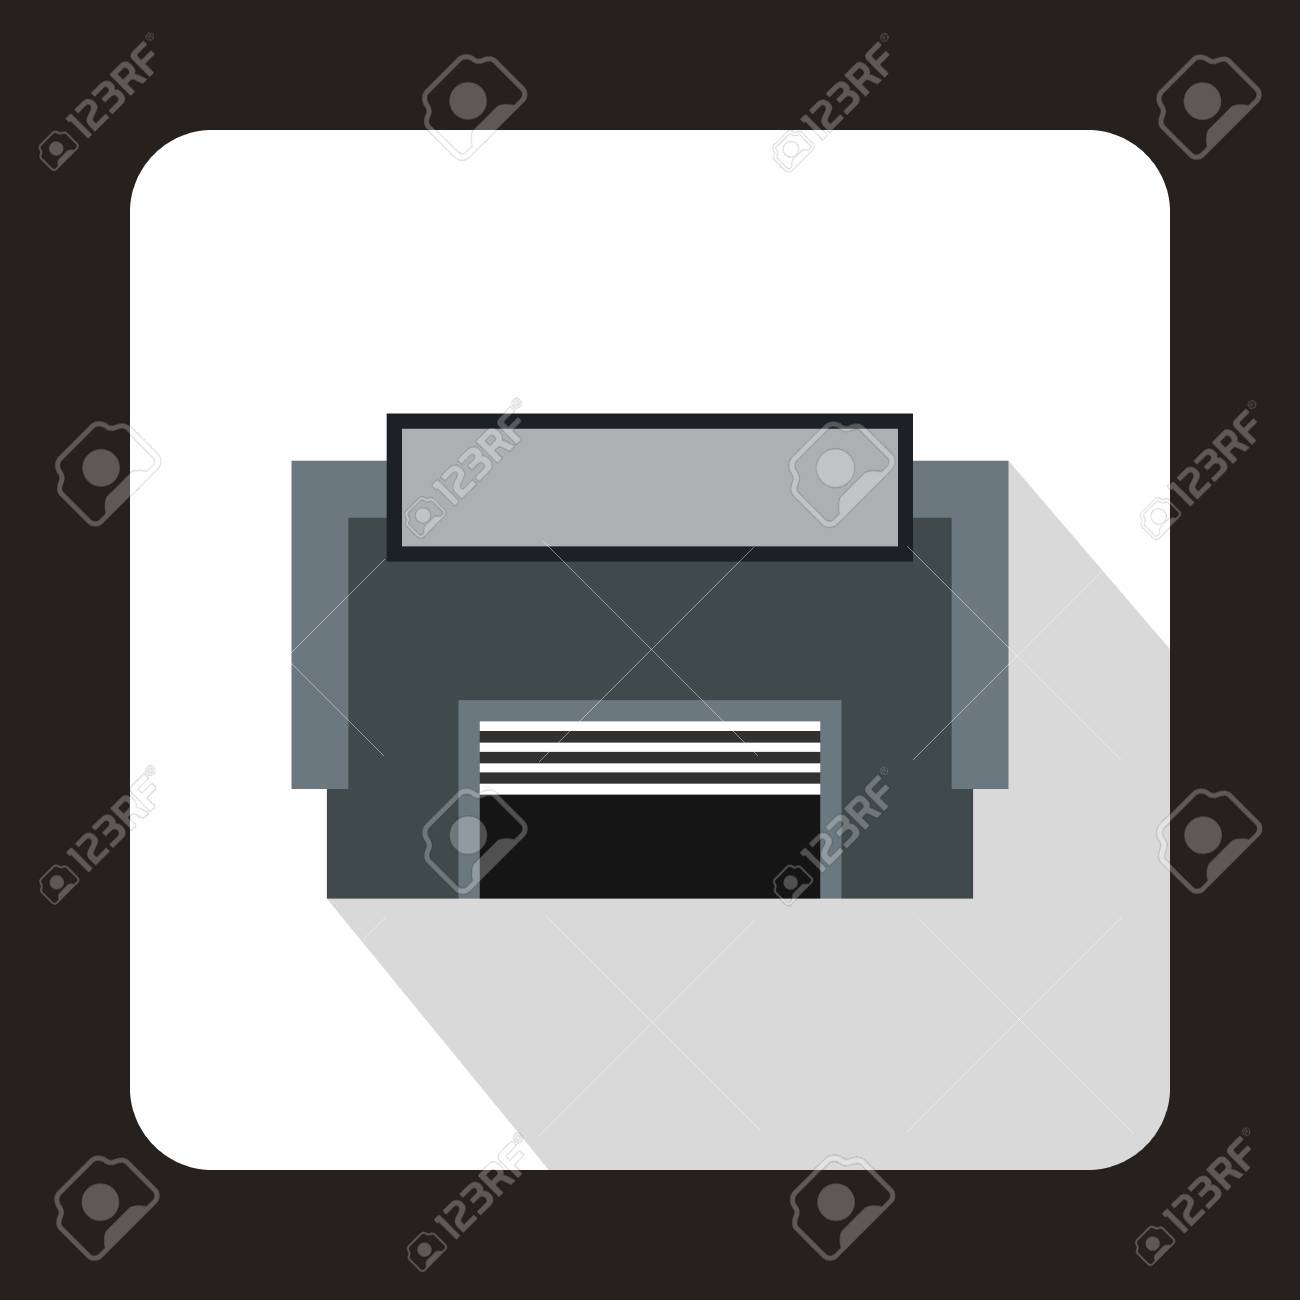 Concrete garage icon in flat style with long shadow building concrete garage icon in flat style with long shadow building symbol stock vector 59679949 biocorpaavc Image collections